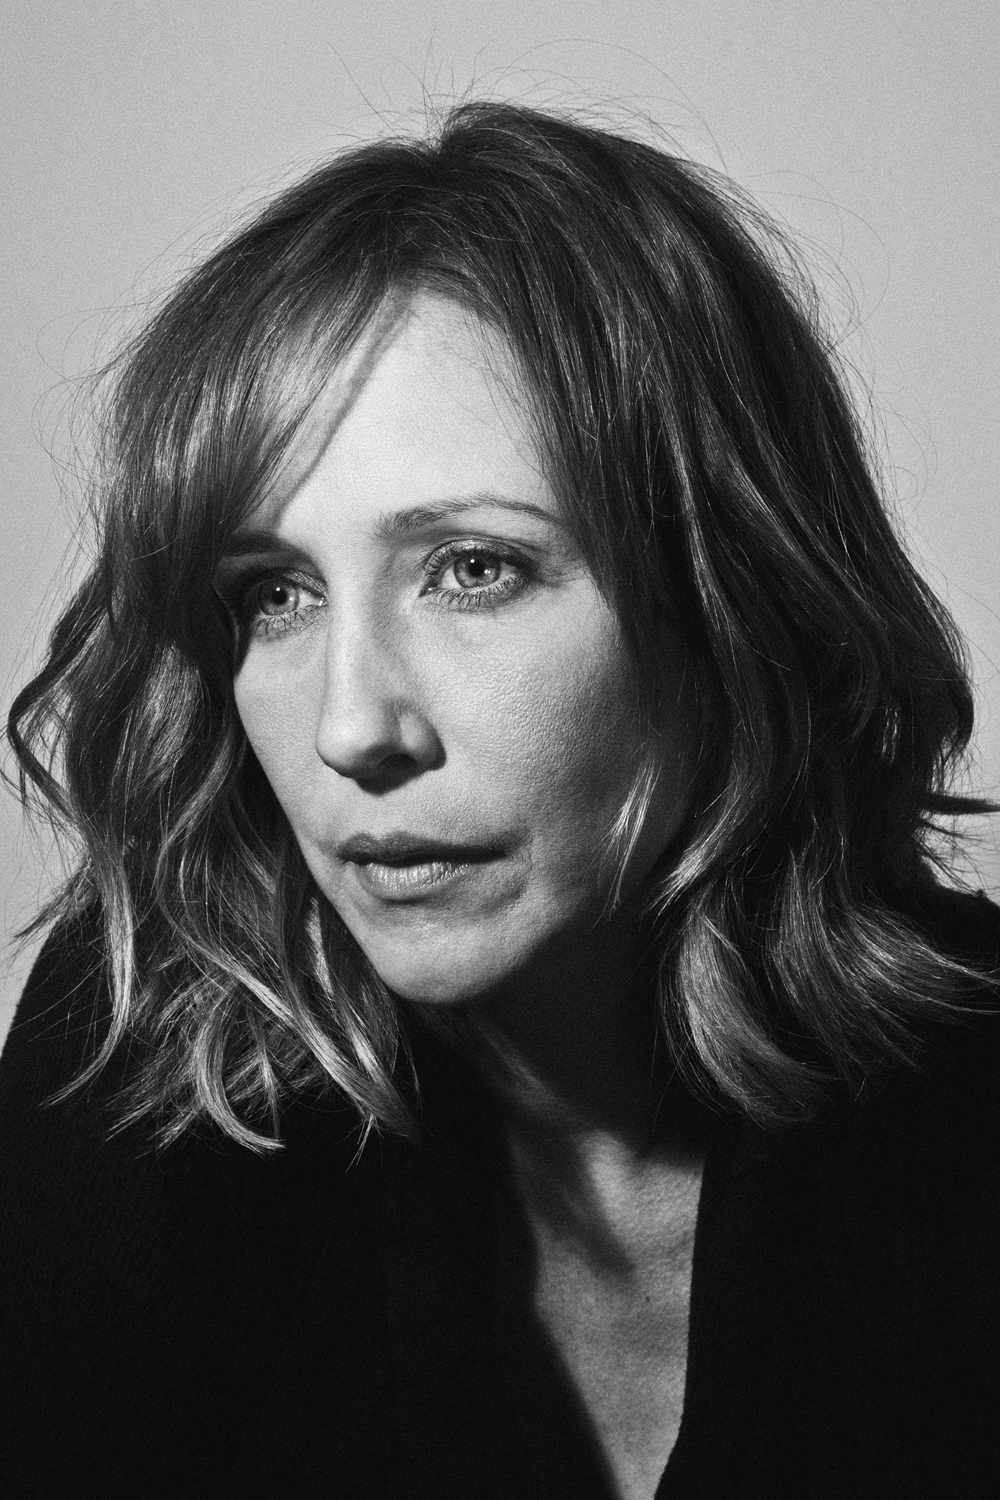 Vera Farmiga, actress. From  That's the Spirit,  Aug. 29, 2011, issue.